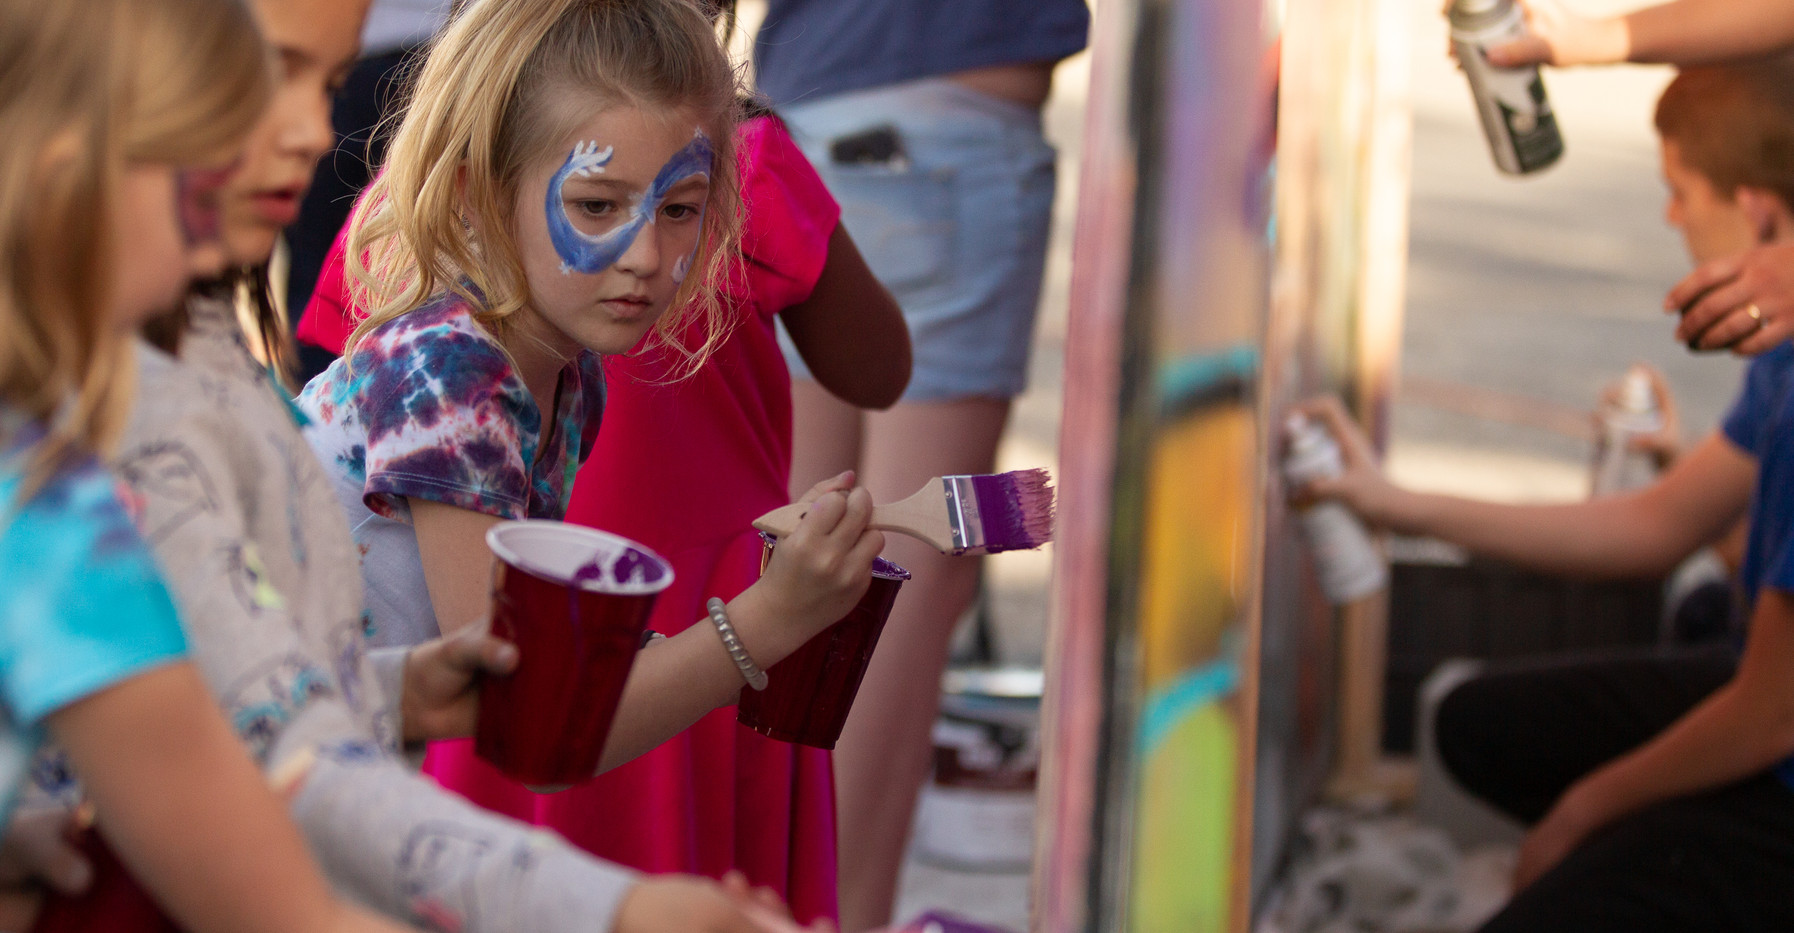 Face painting at Mural Fest